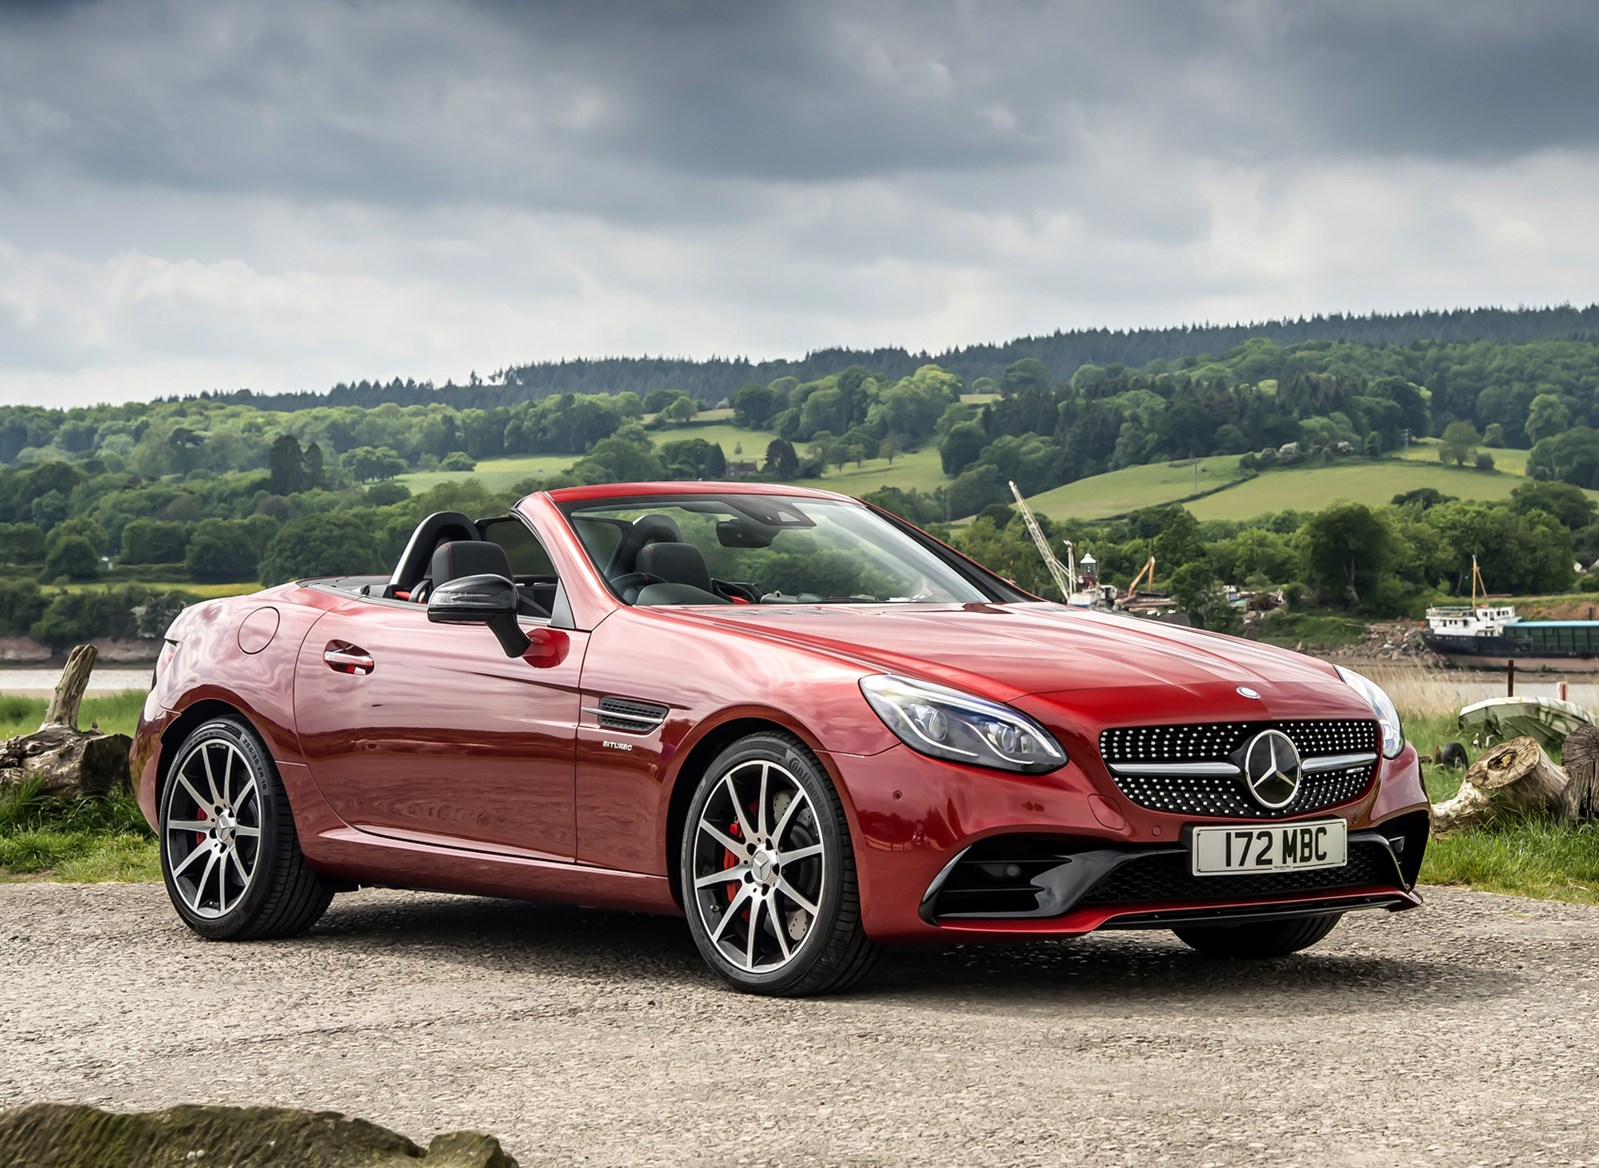 Used Mercedes-Benz SLC-Class AMG (2016 - 2018) Review ...